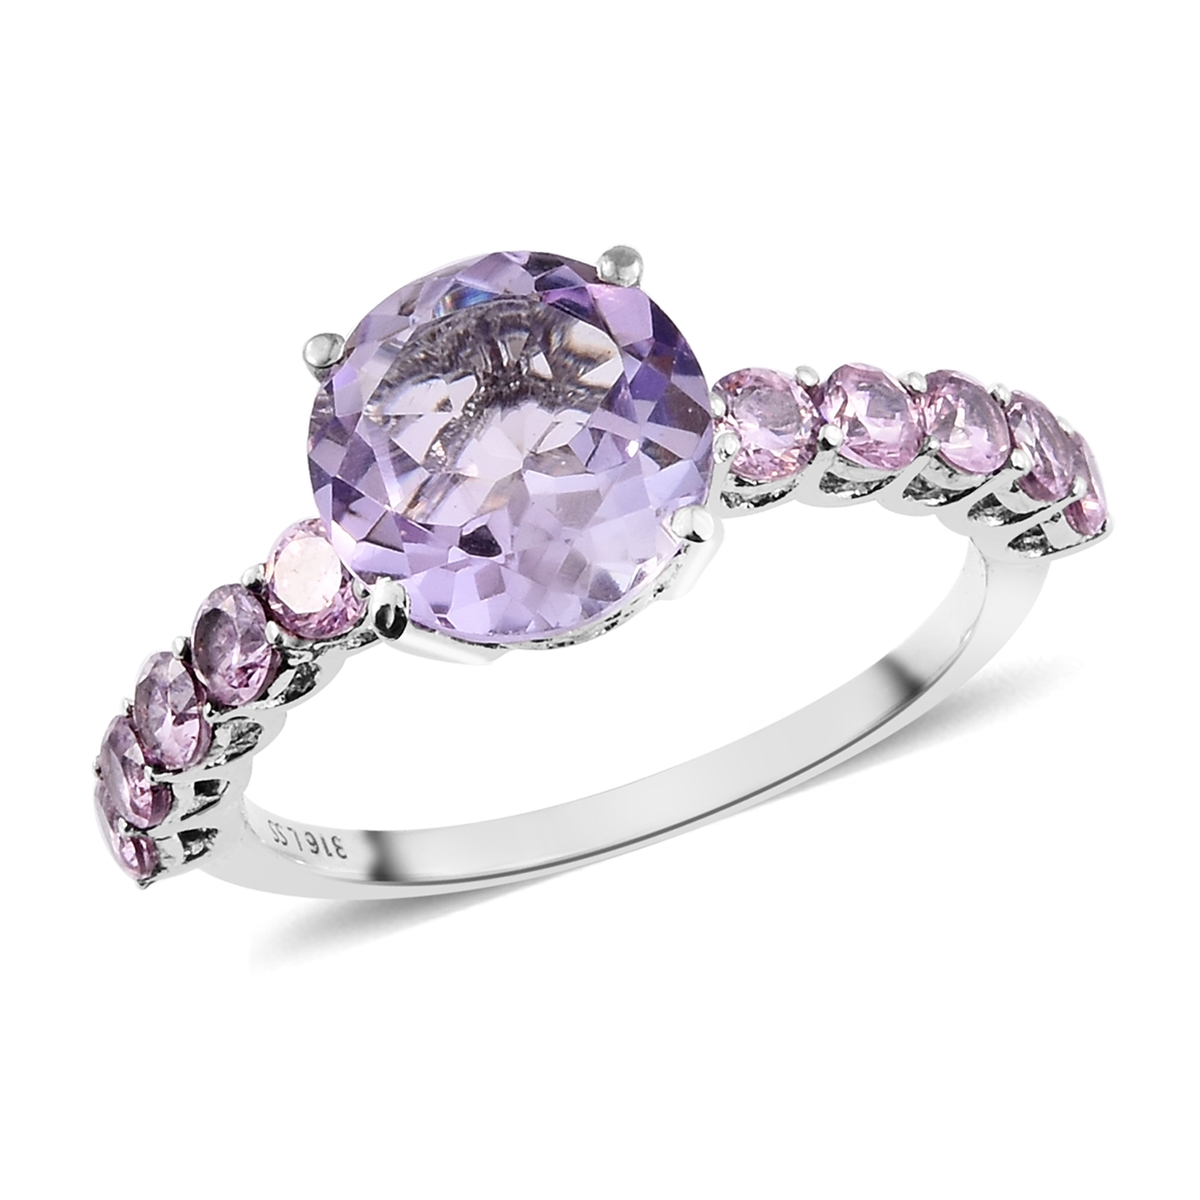 Rose De France Amethyst, Simulated Pink Diamond Stainless Steel Ring